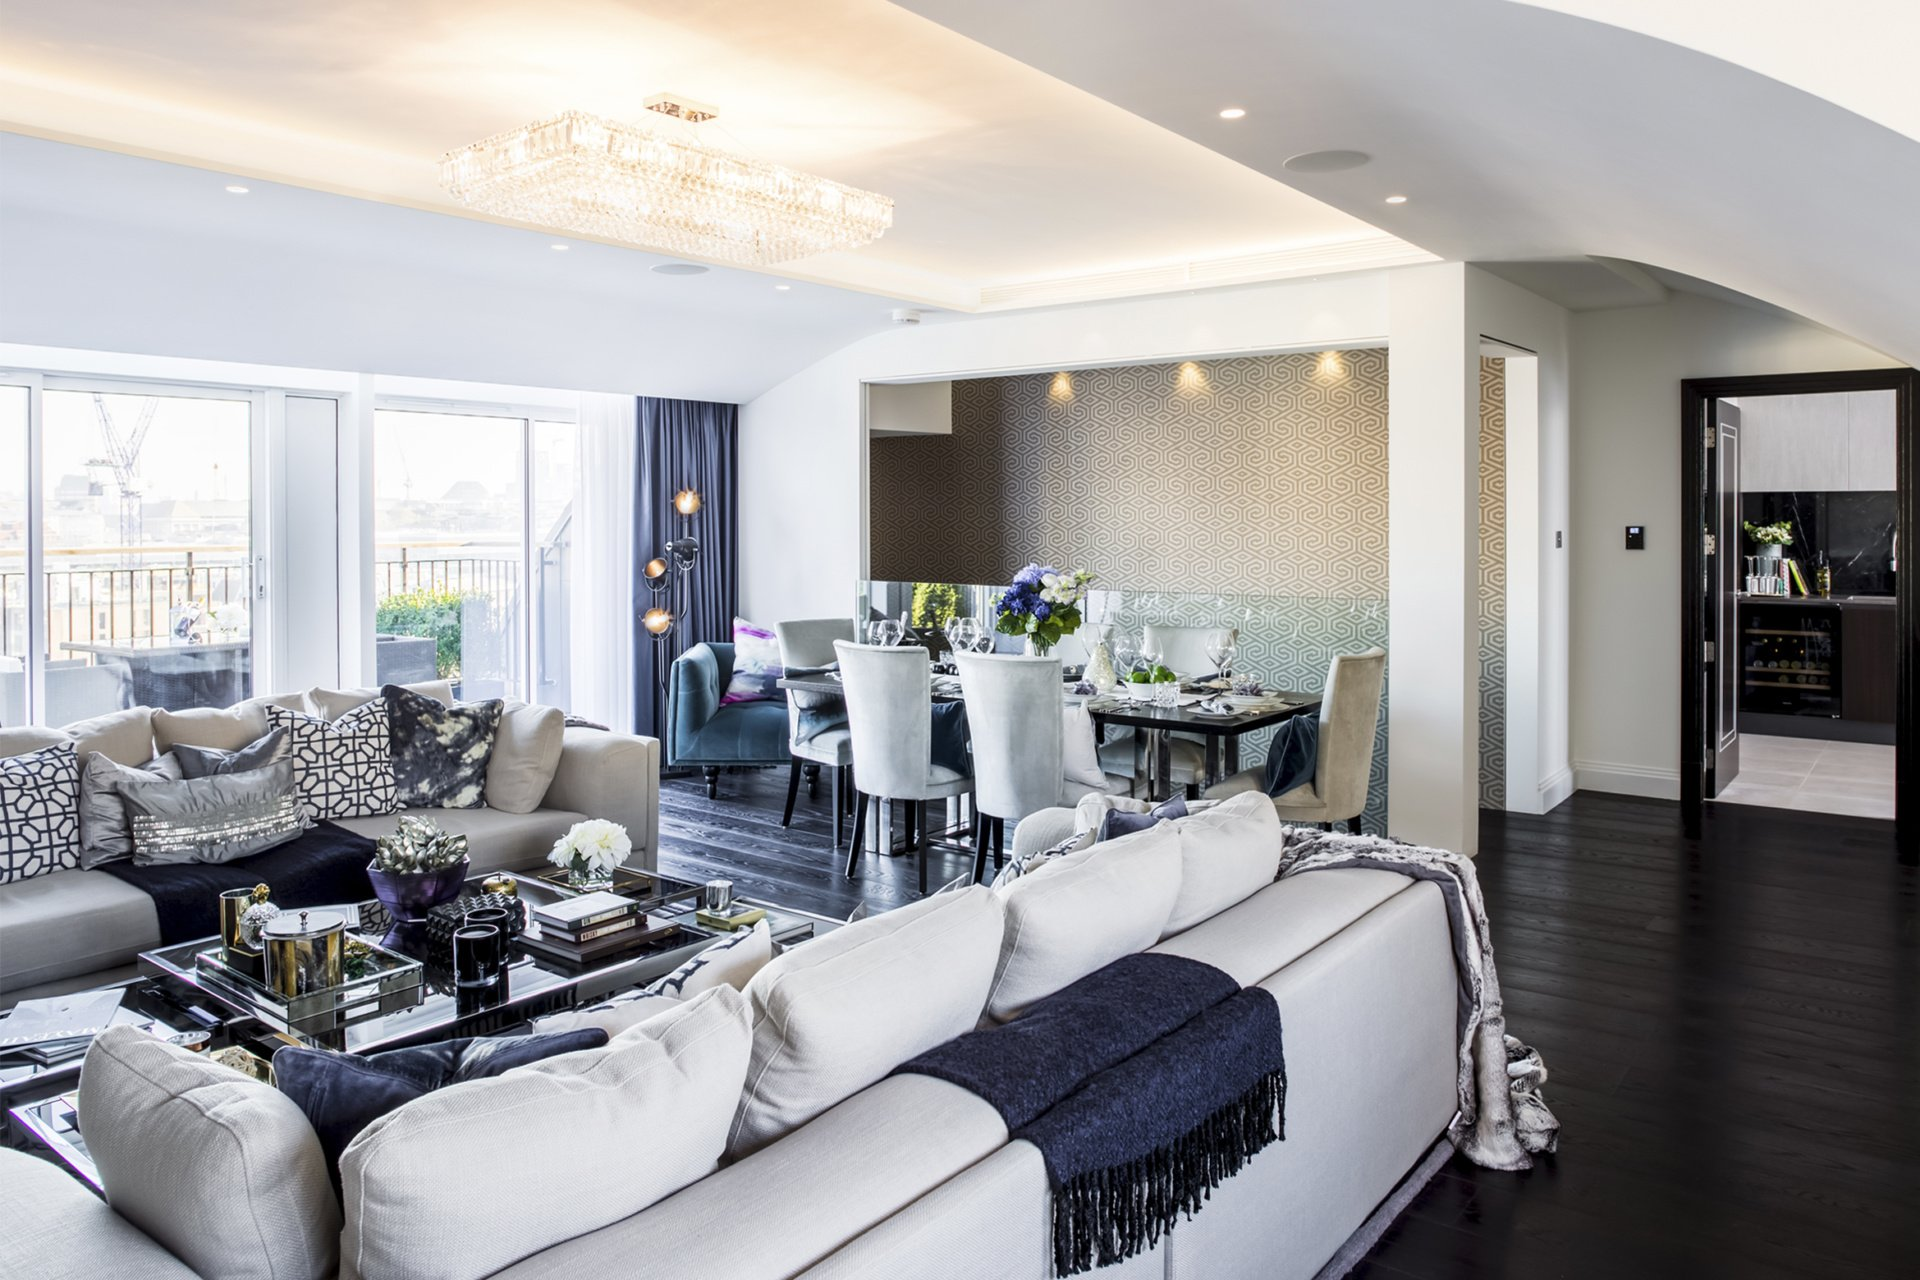 St James Park Westminster SW1H Penthouse alterations and refurbishment Living and dining area St James Park, Westminster SW1H | Penthouse alterations and refurbishment